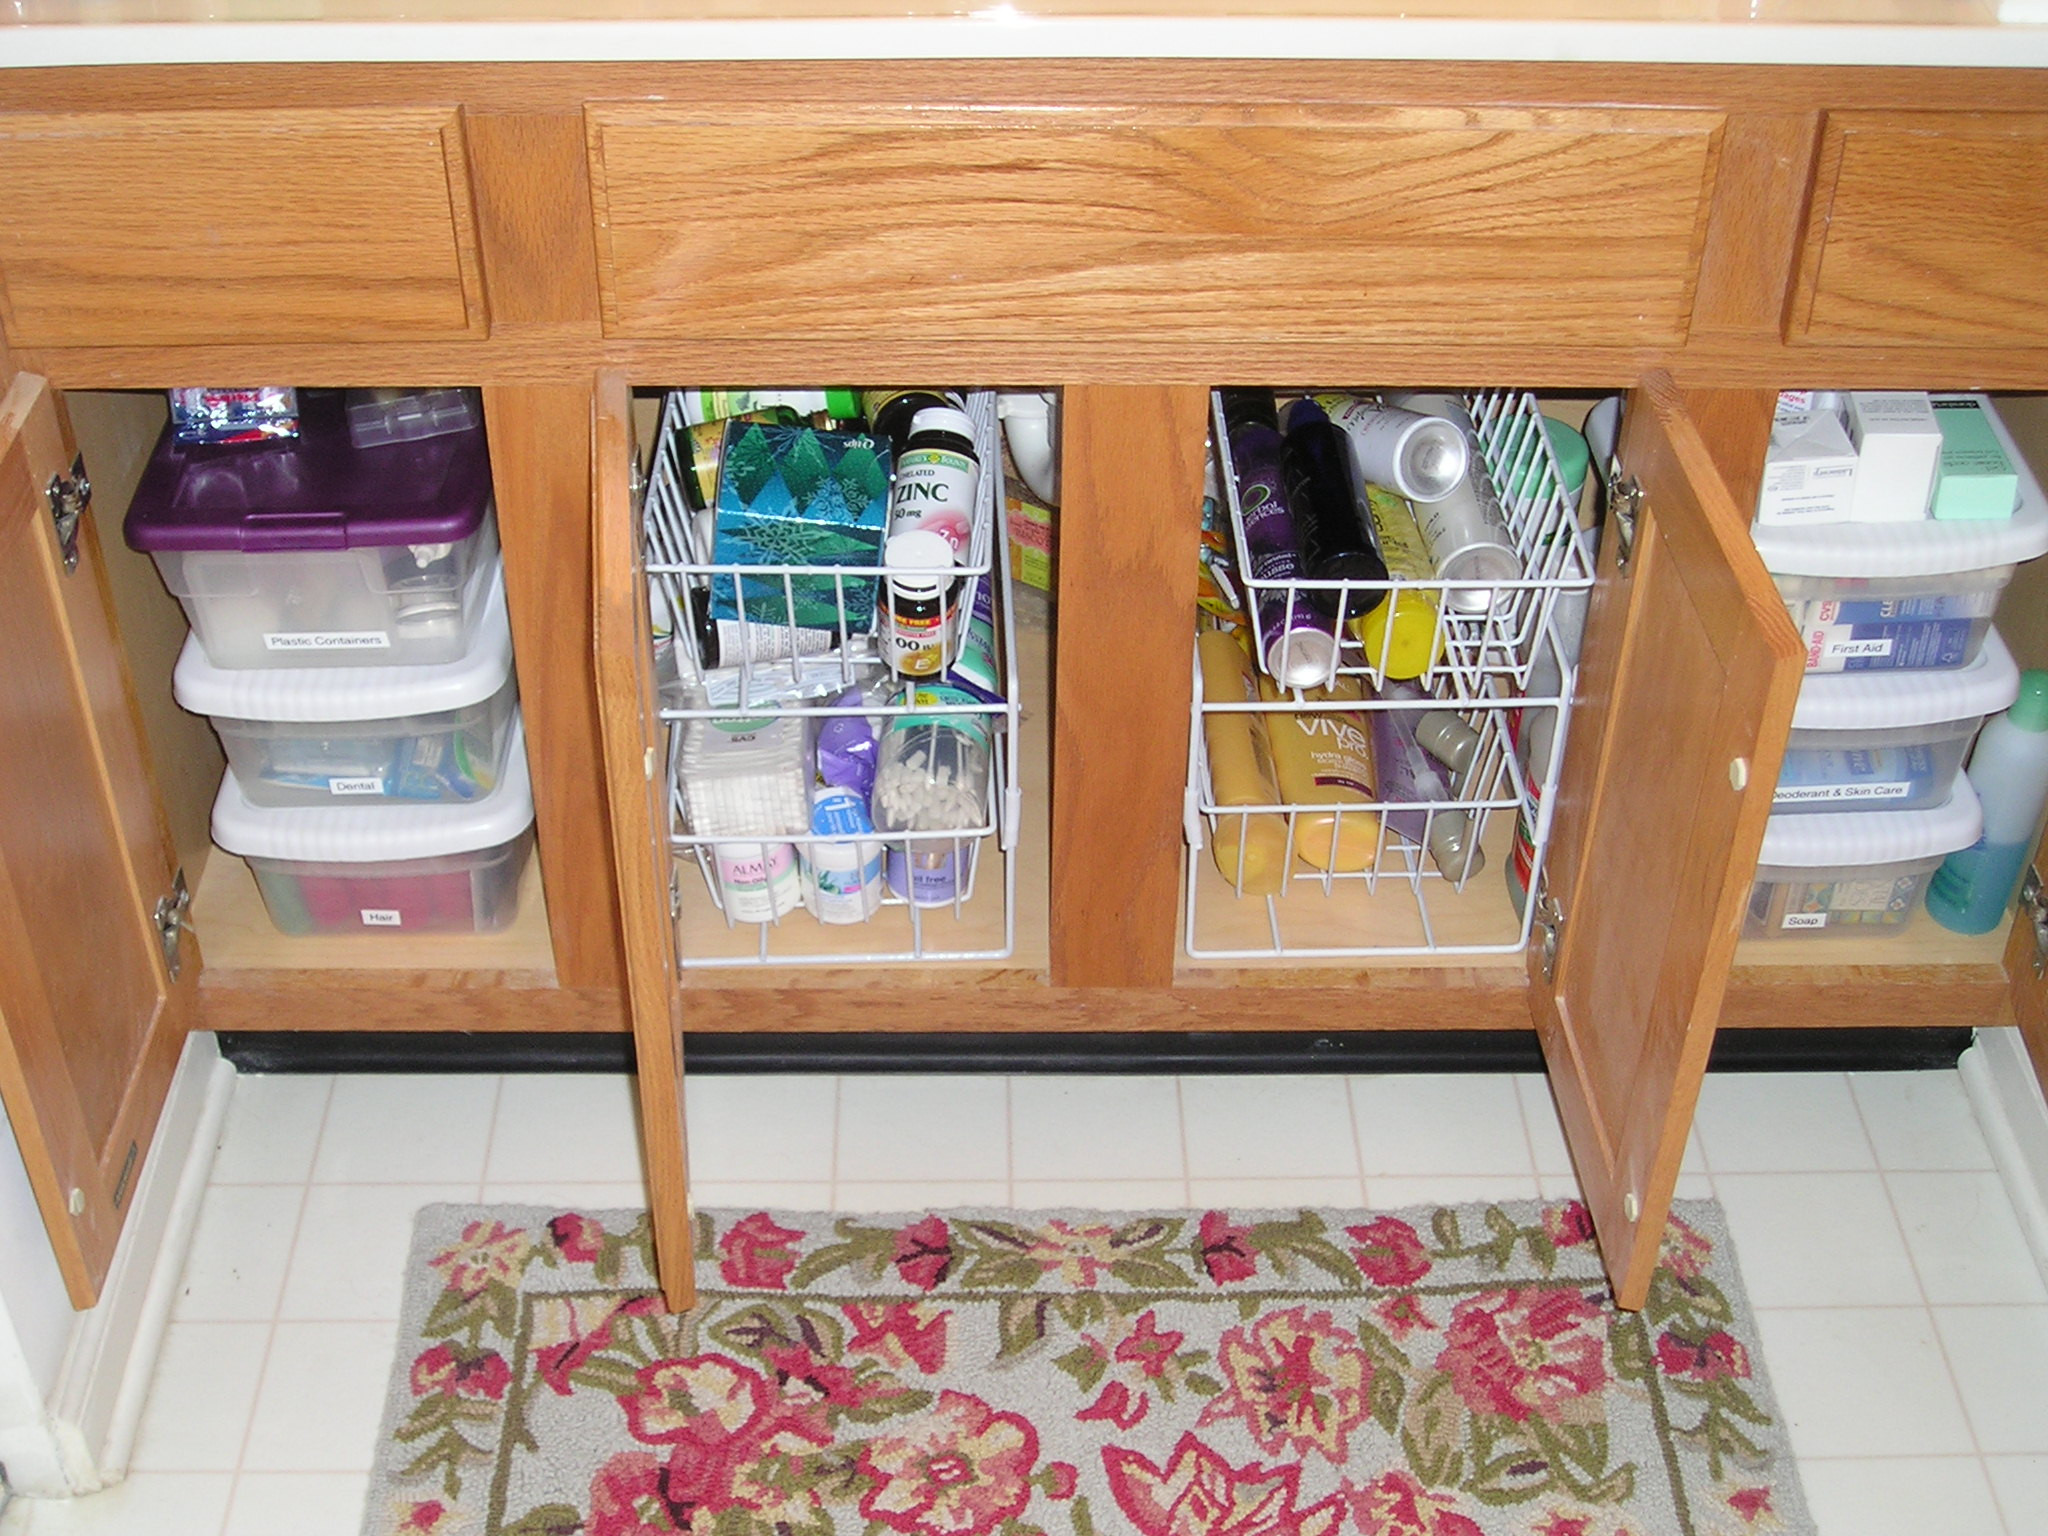 Best ideas about Bathroom Sink Organizer . Save or Pin A sort of Hoarder Reforms & organizes her spices in the Now.